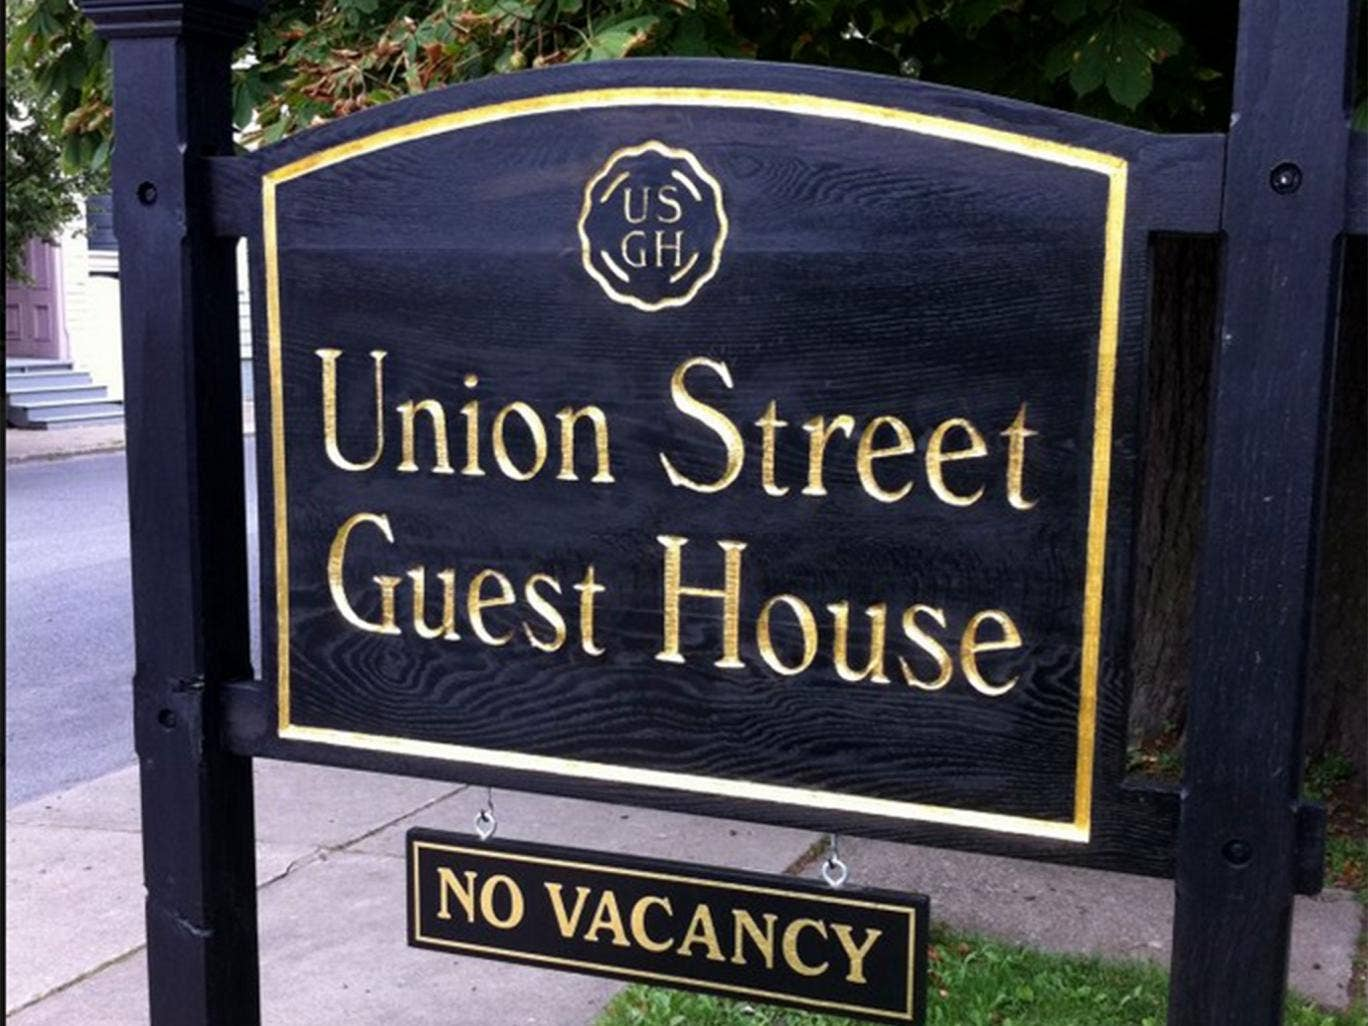 The welcome sign at the Union Stree Guest House